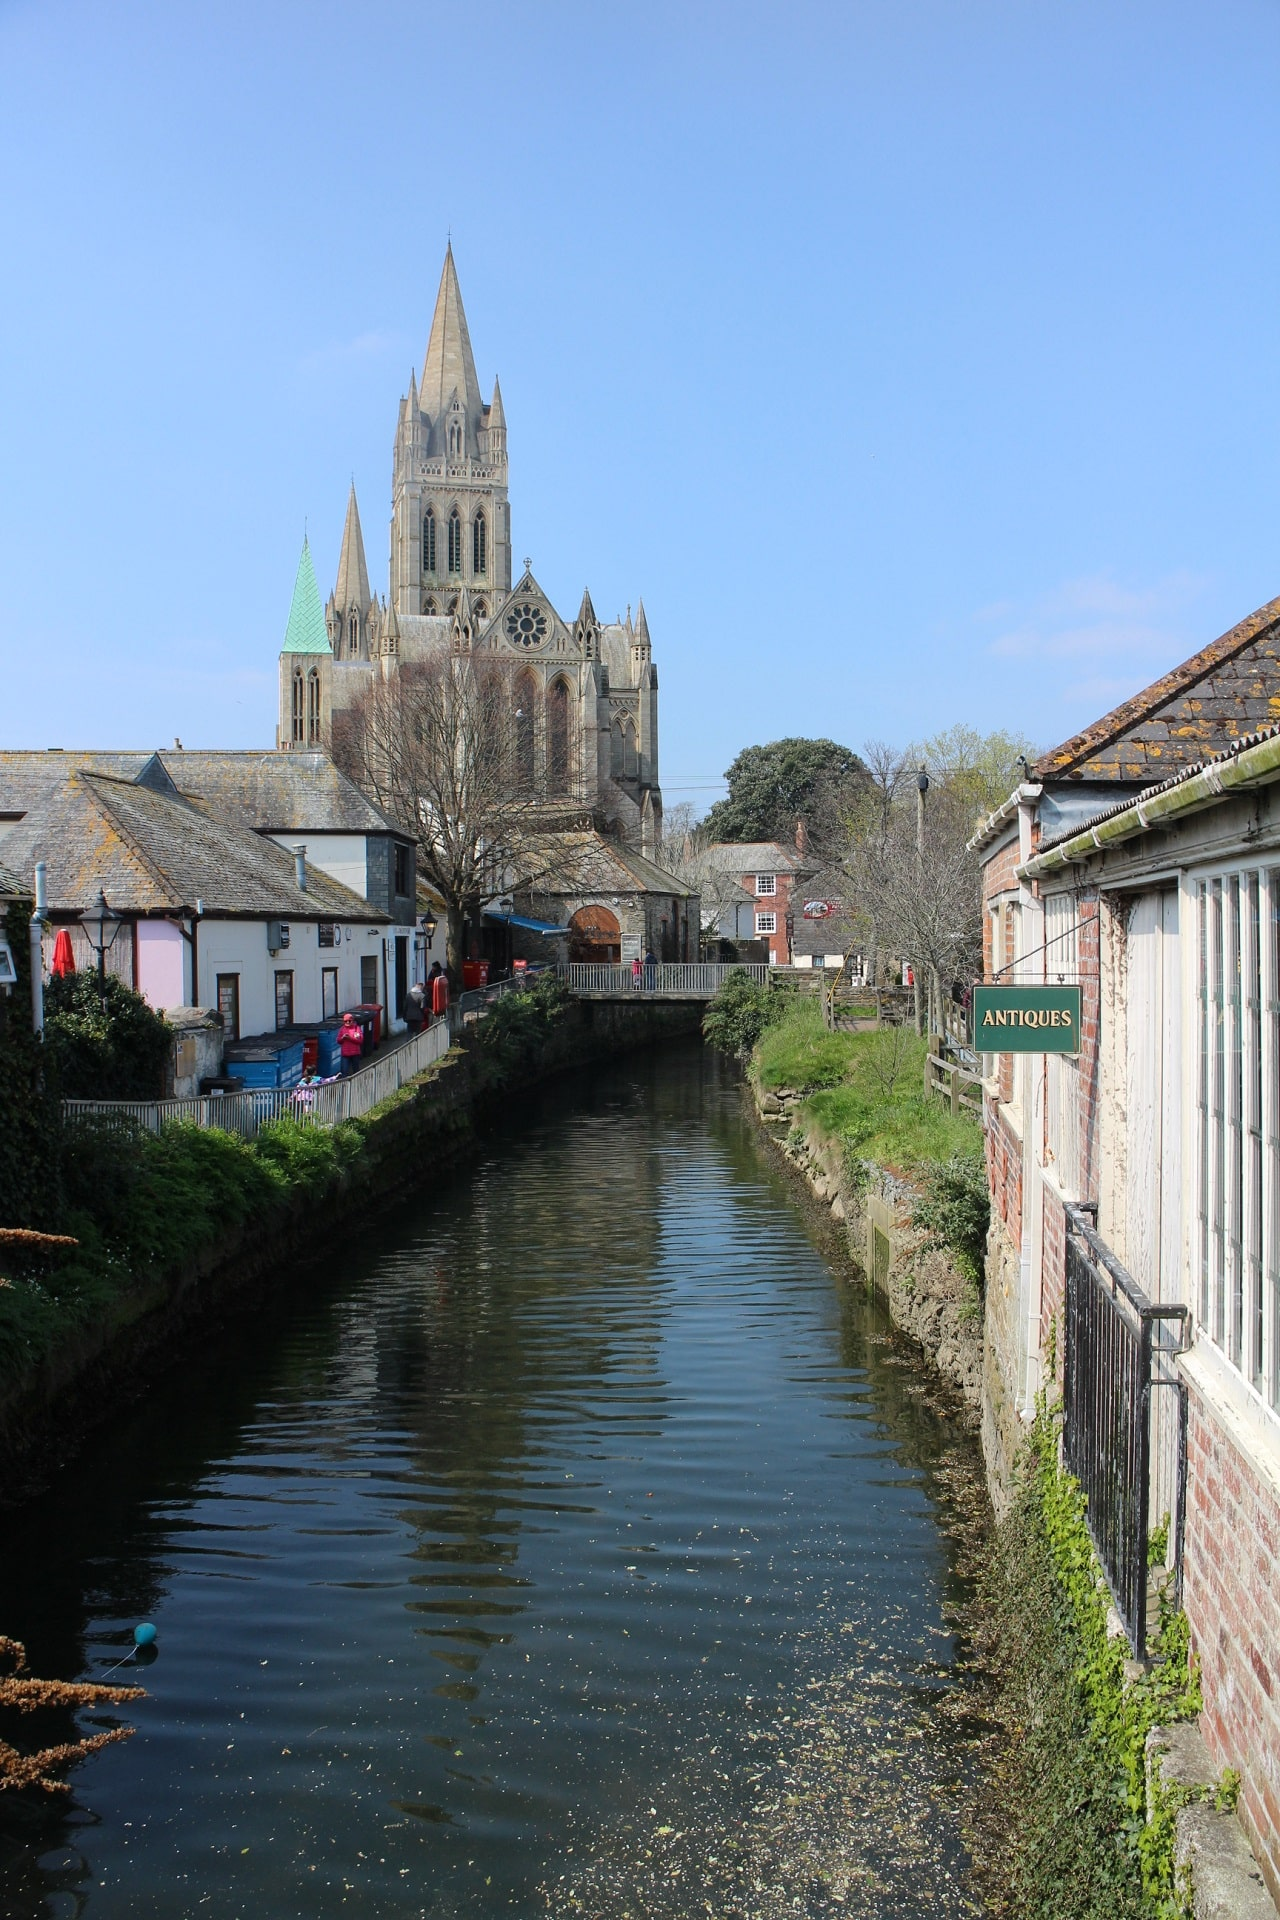 View along the river in Truro towards the cathedral